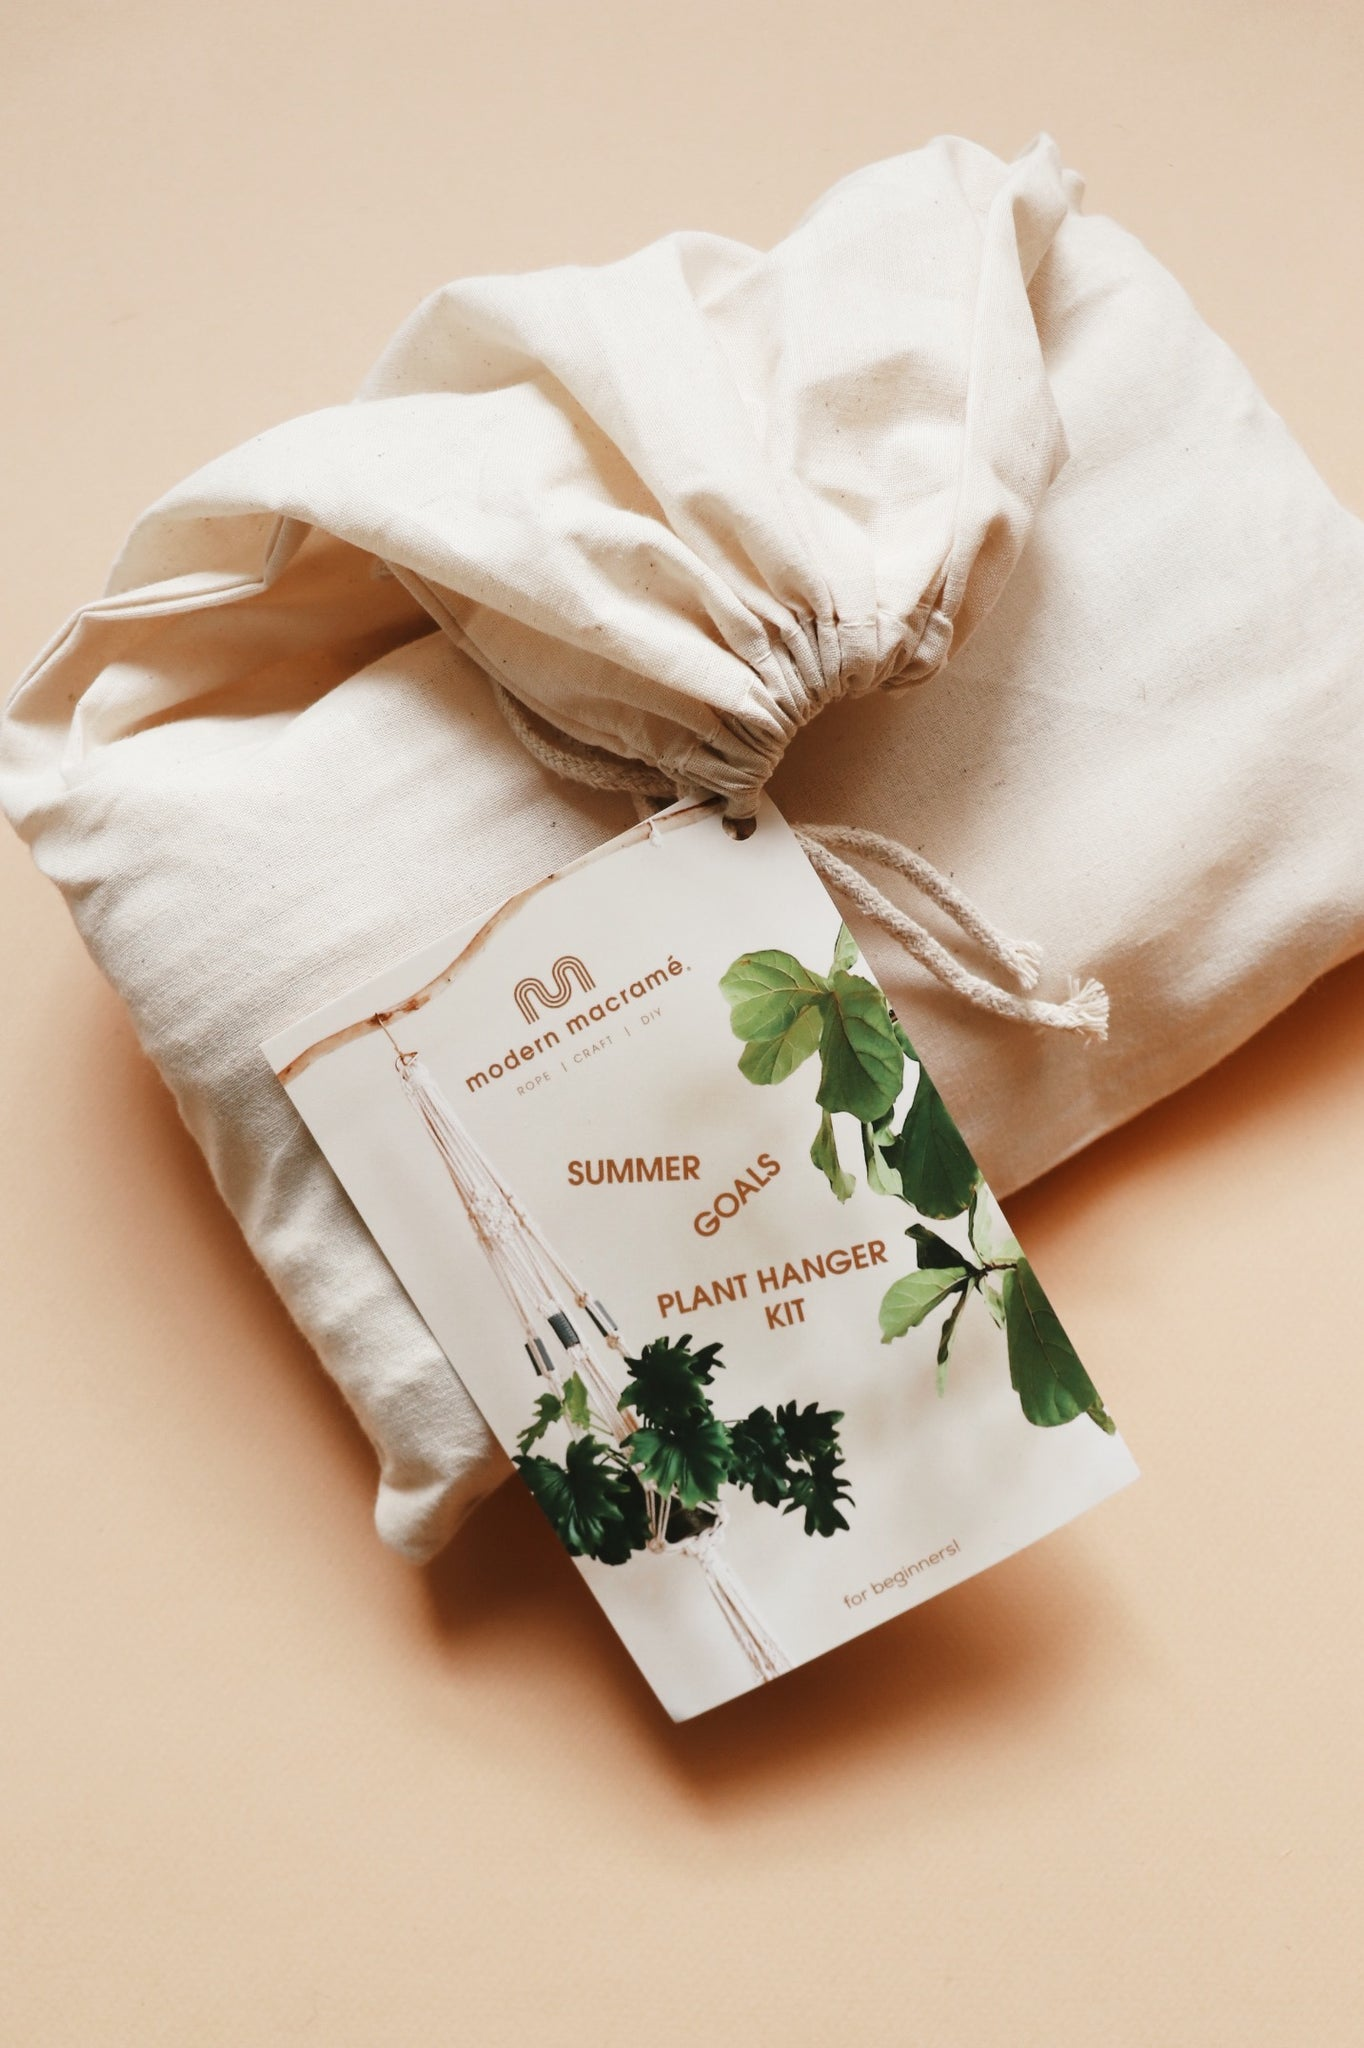 Summer Goals Plant Hanger Kit in Muslin Bag